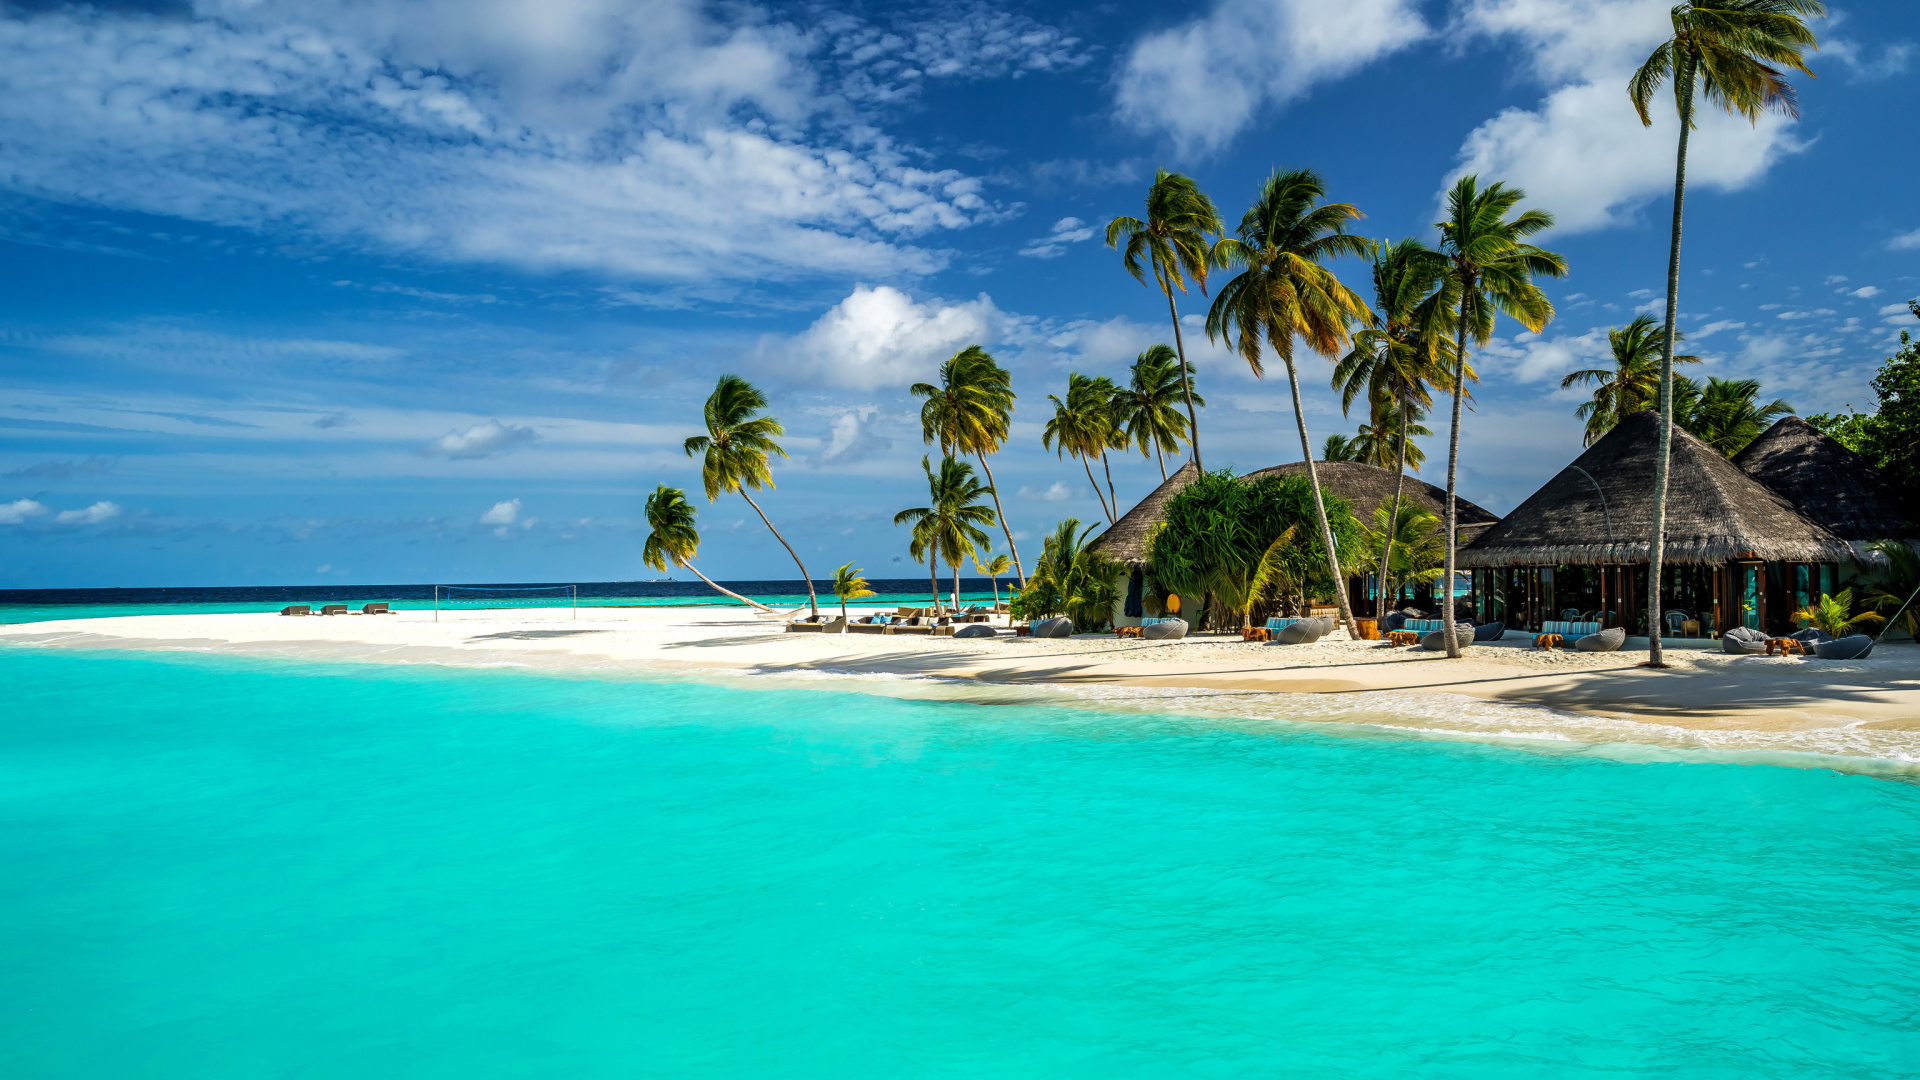 Bungalow Hotel And Villa On Maldives Wallpaper For 1920x1080